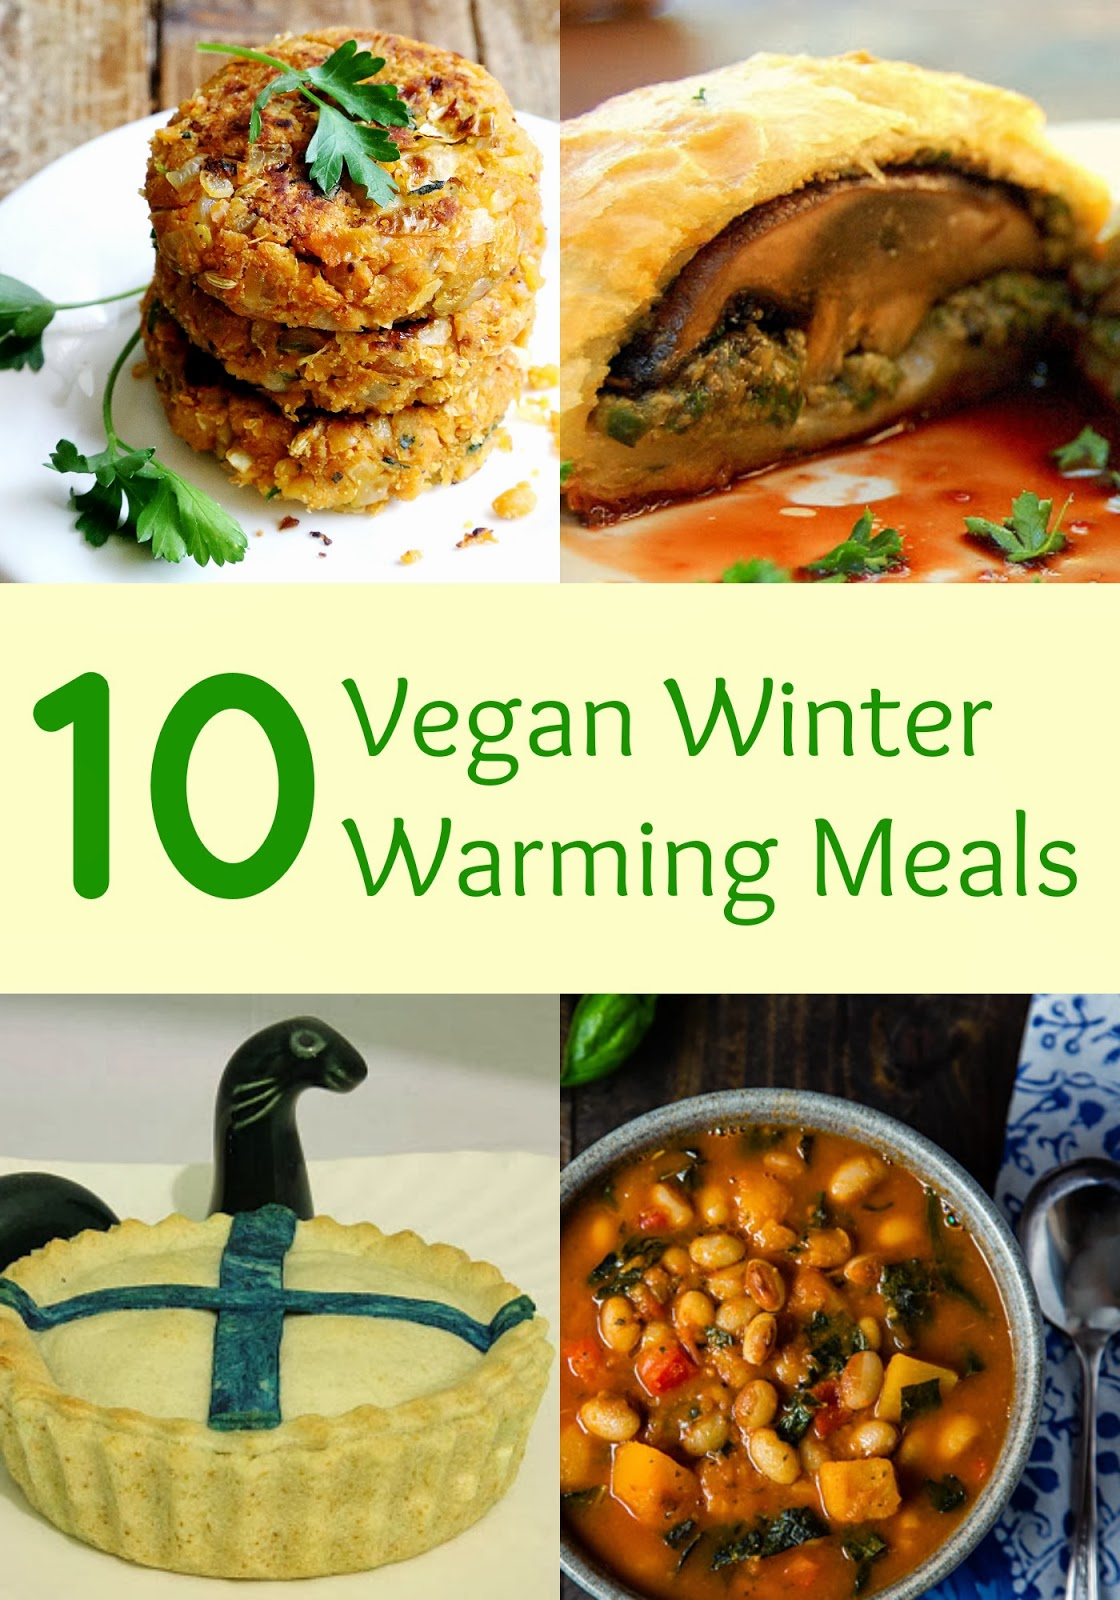 Rachel cotterill 10 warming vegan recipes for winter could hardly get more appropriate than this haggis neep and tattie pie from allotment2kitchen shaheen is the queen of pies and has provided recipes forumfinder Images